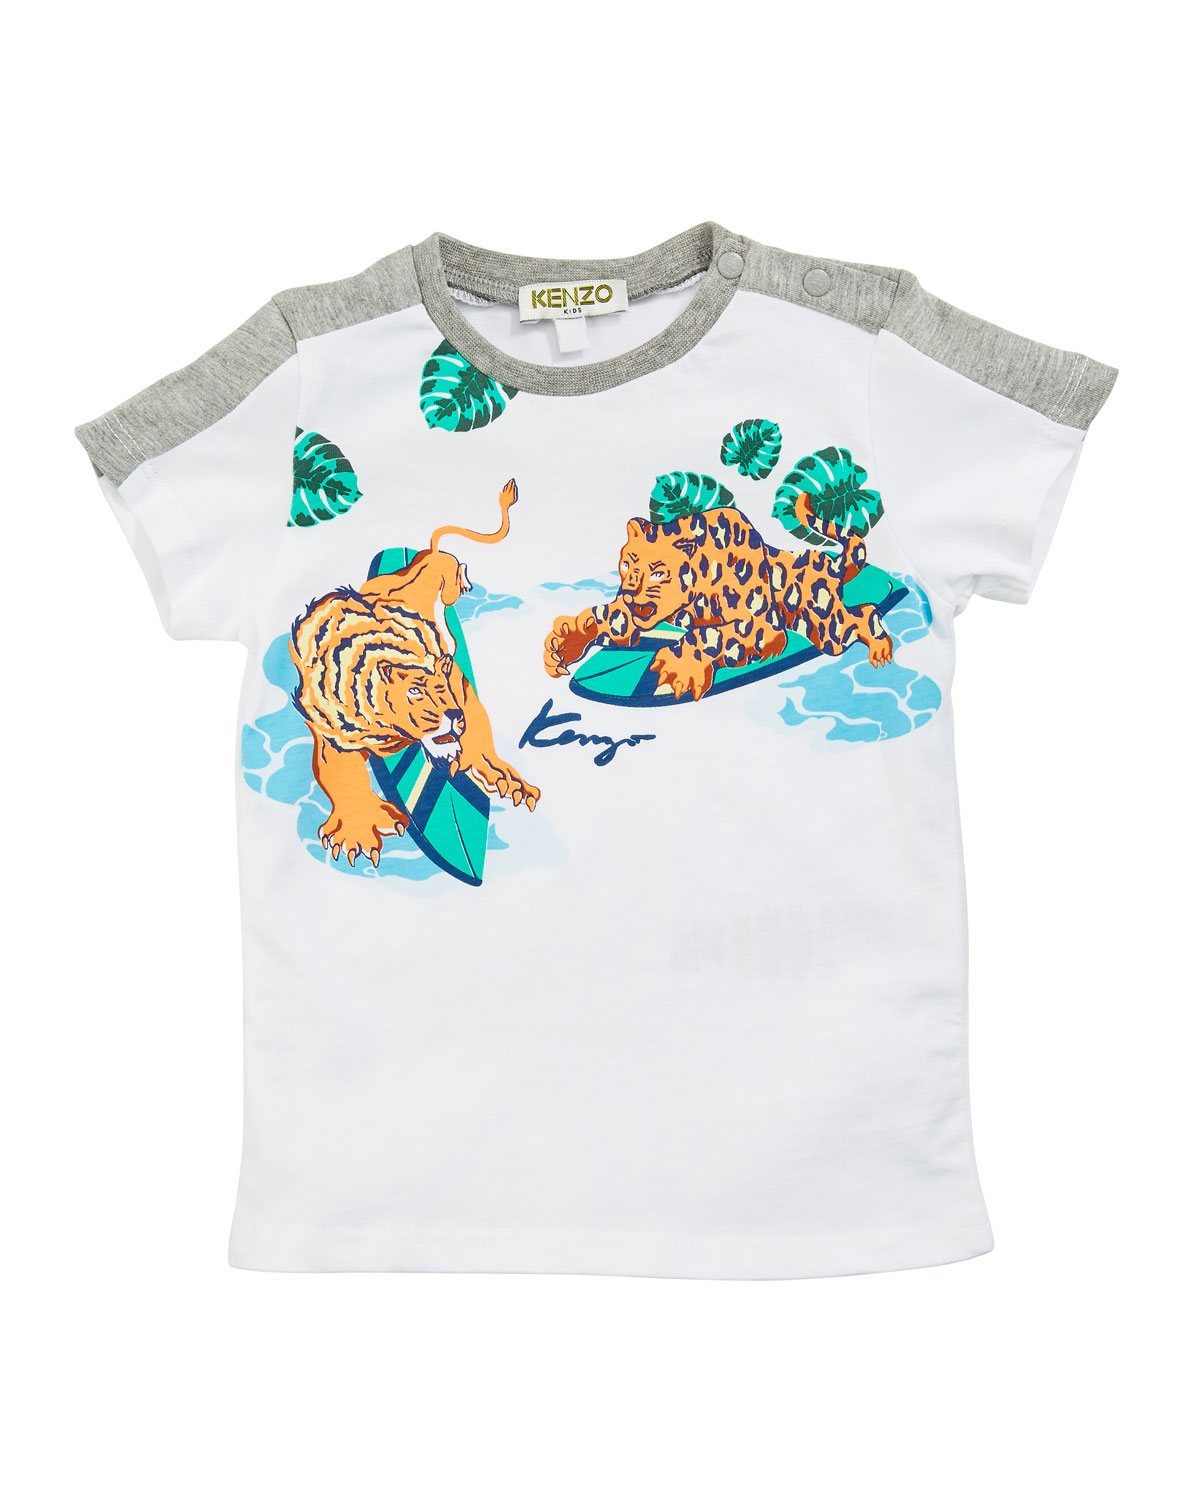 e2065388c Kenzo Surfing Tiger Graphic Tee, Size 12-18 Months and Matching ...